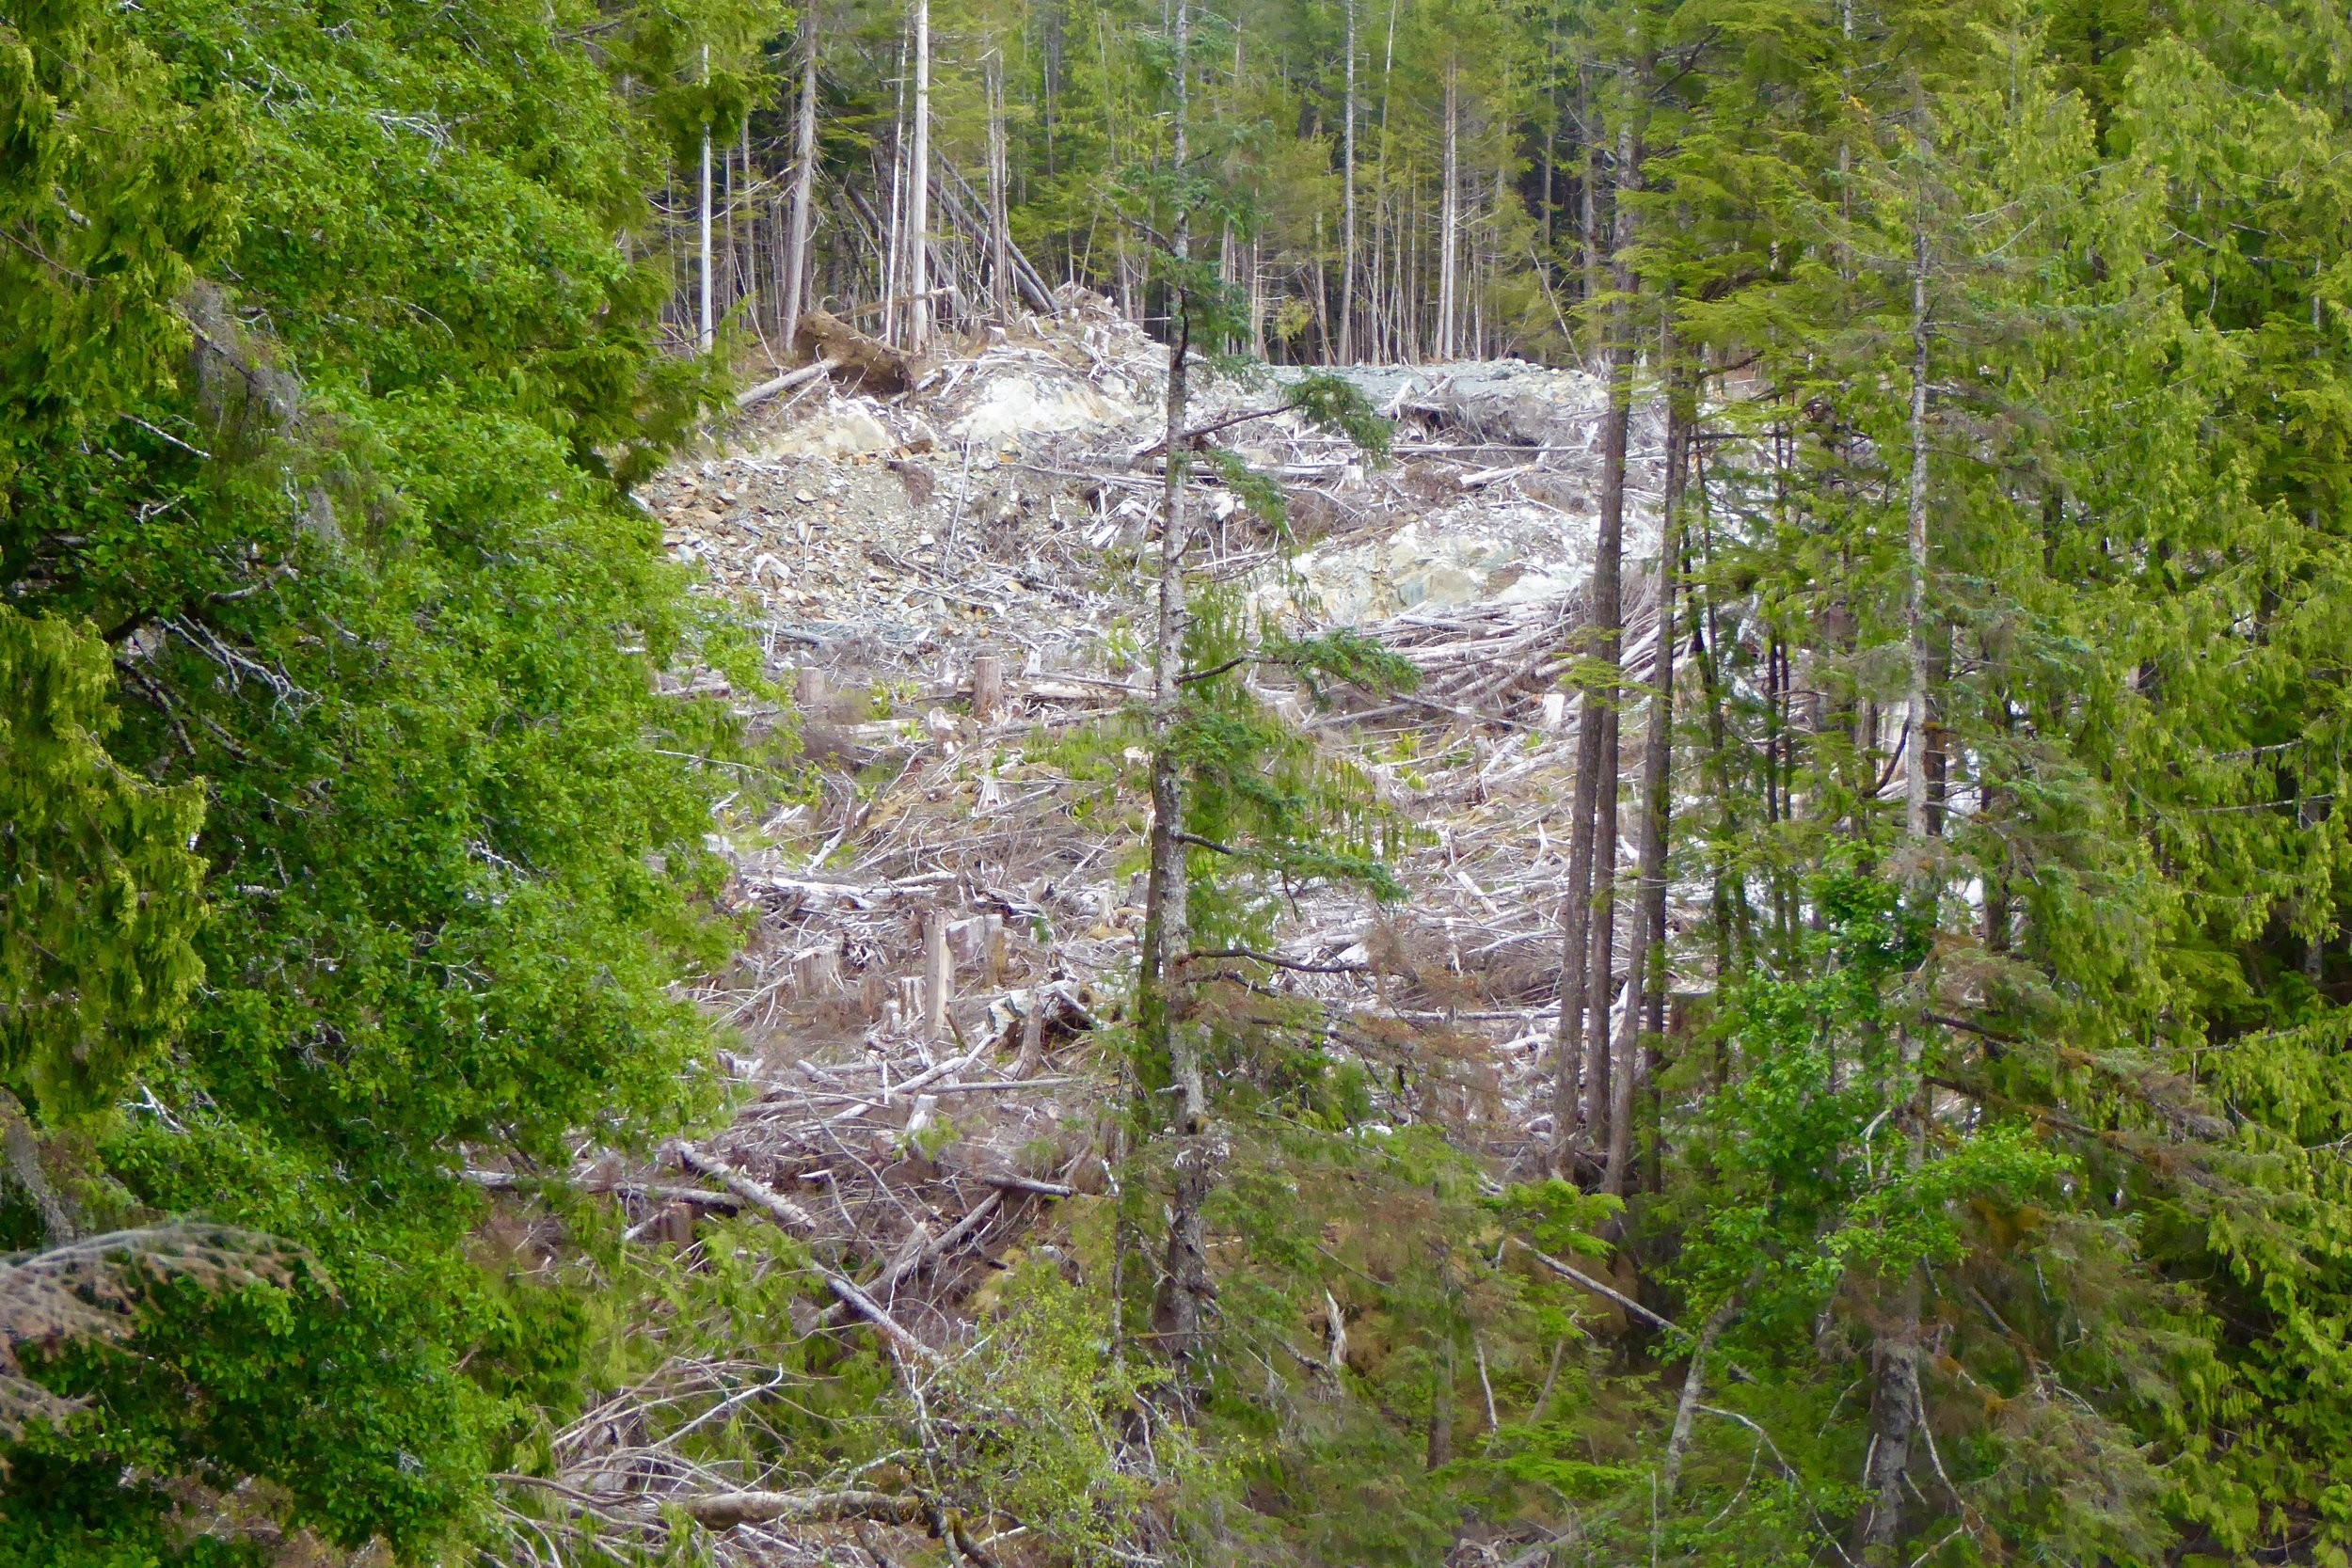 Close by is the logging operation